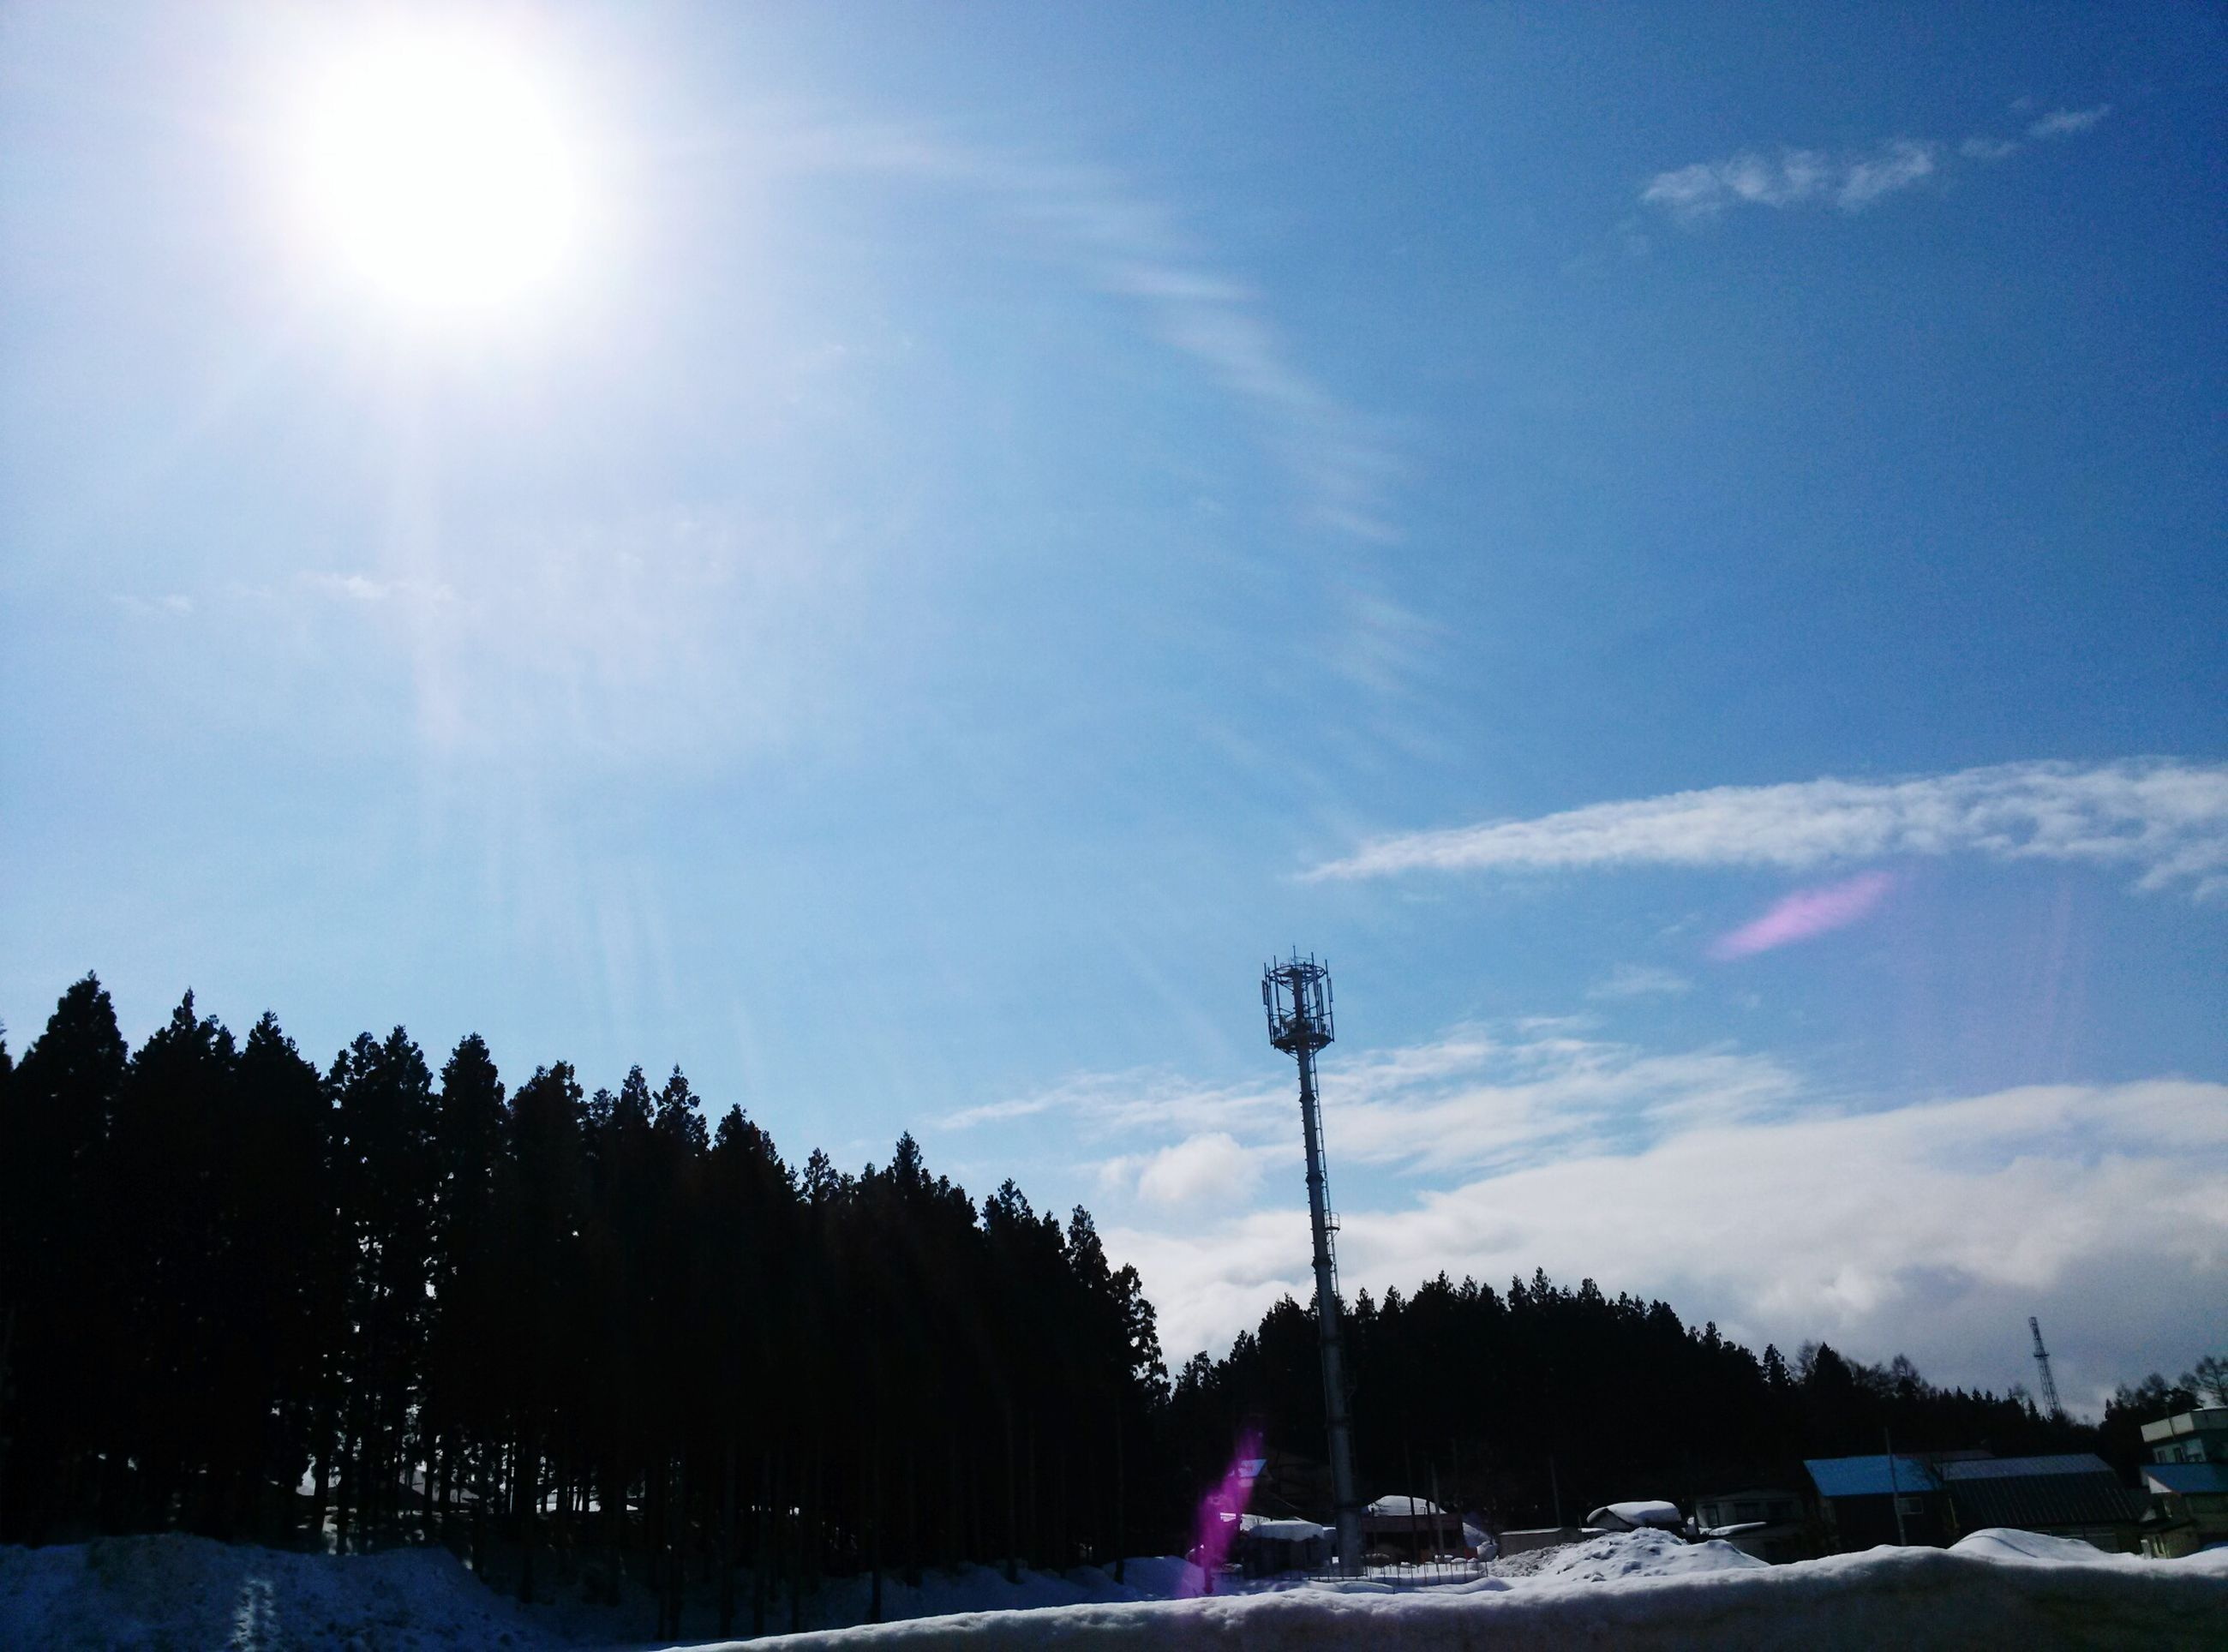 sun, sky, snow, sunbeam, cold temperature, winter, sunlight, lens flare, tranquility, beauty in nature, nature, tranquil scene, cloud - sky, street light, scenics, blue, transportation, road, season, weather